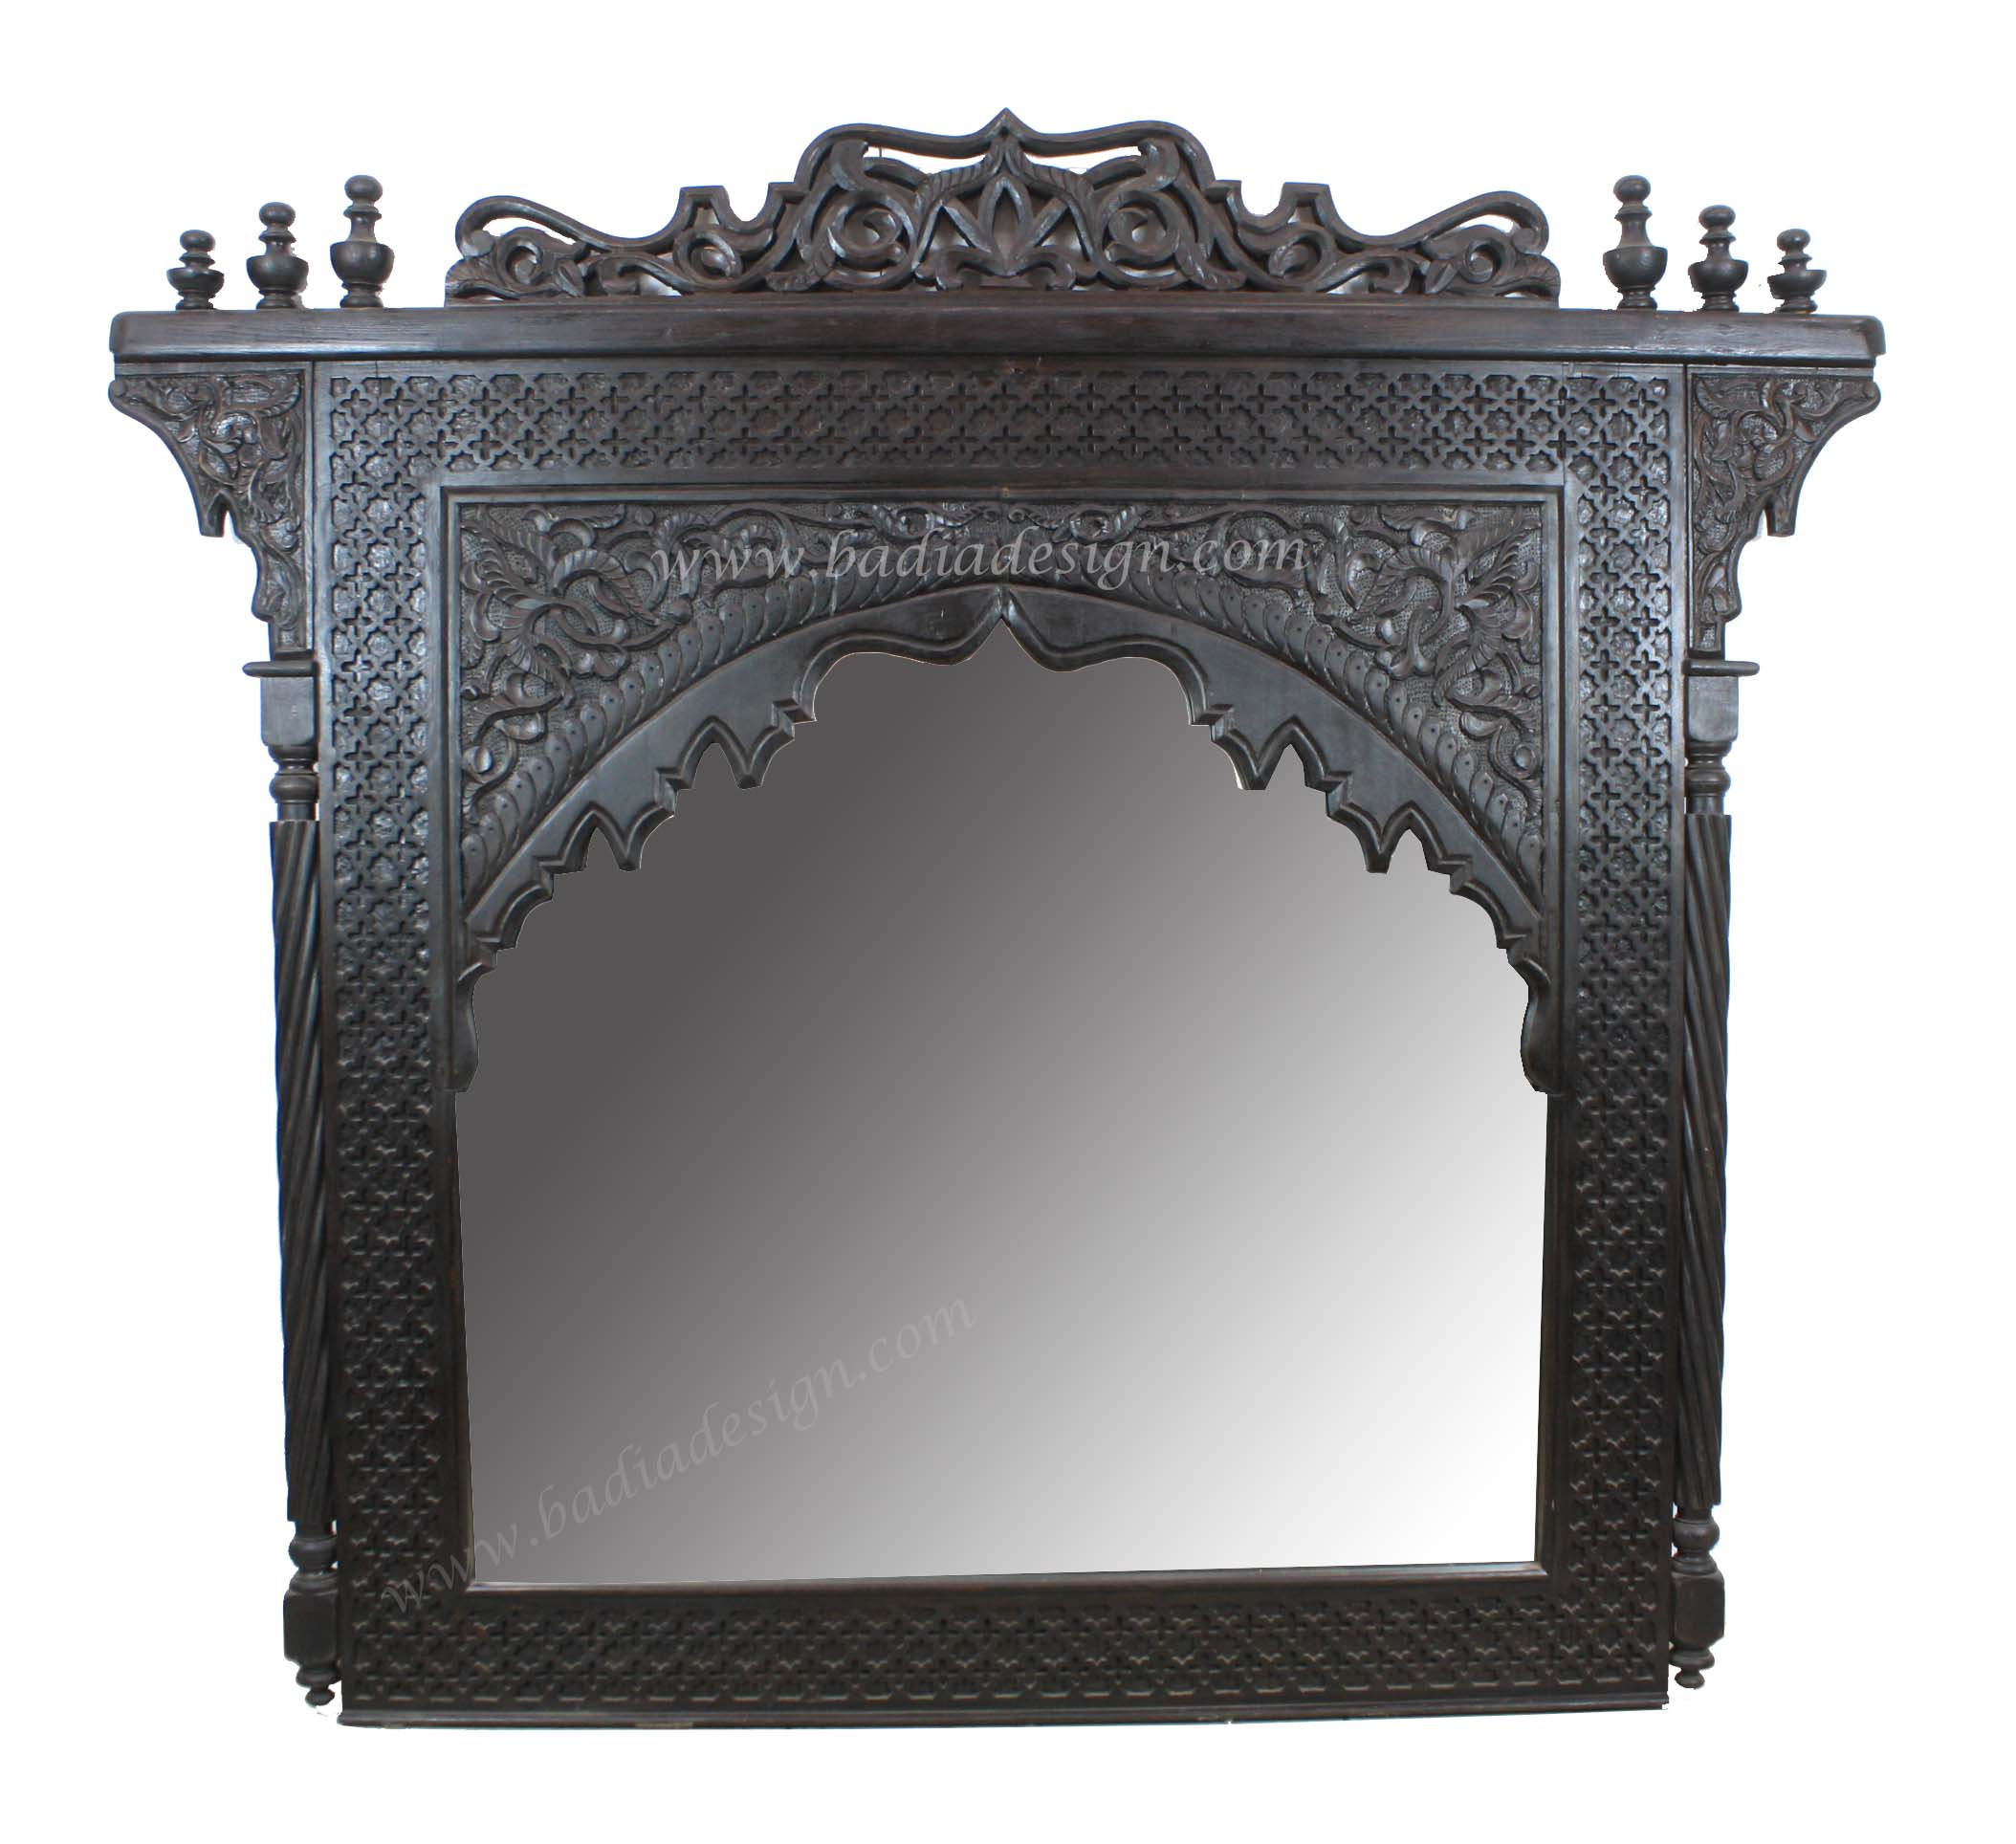 moroccan-hand-carved-wooden-mirror-m-w014.jpg